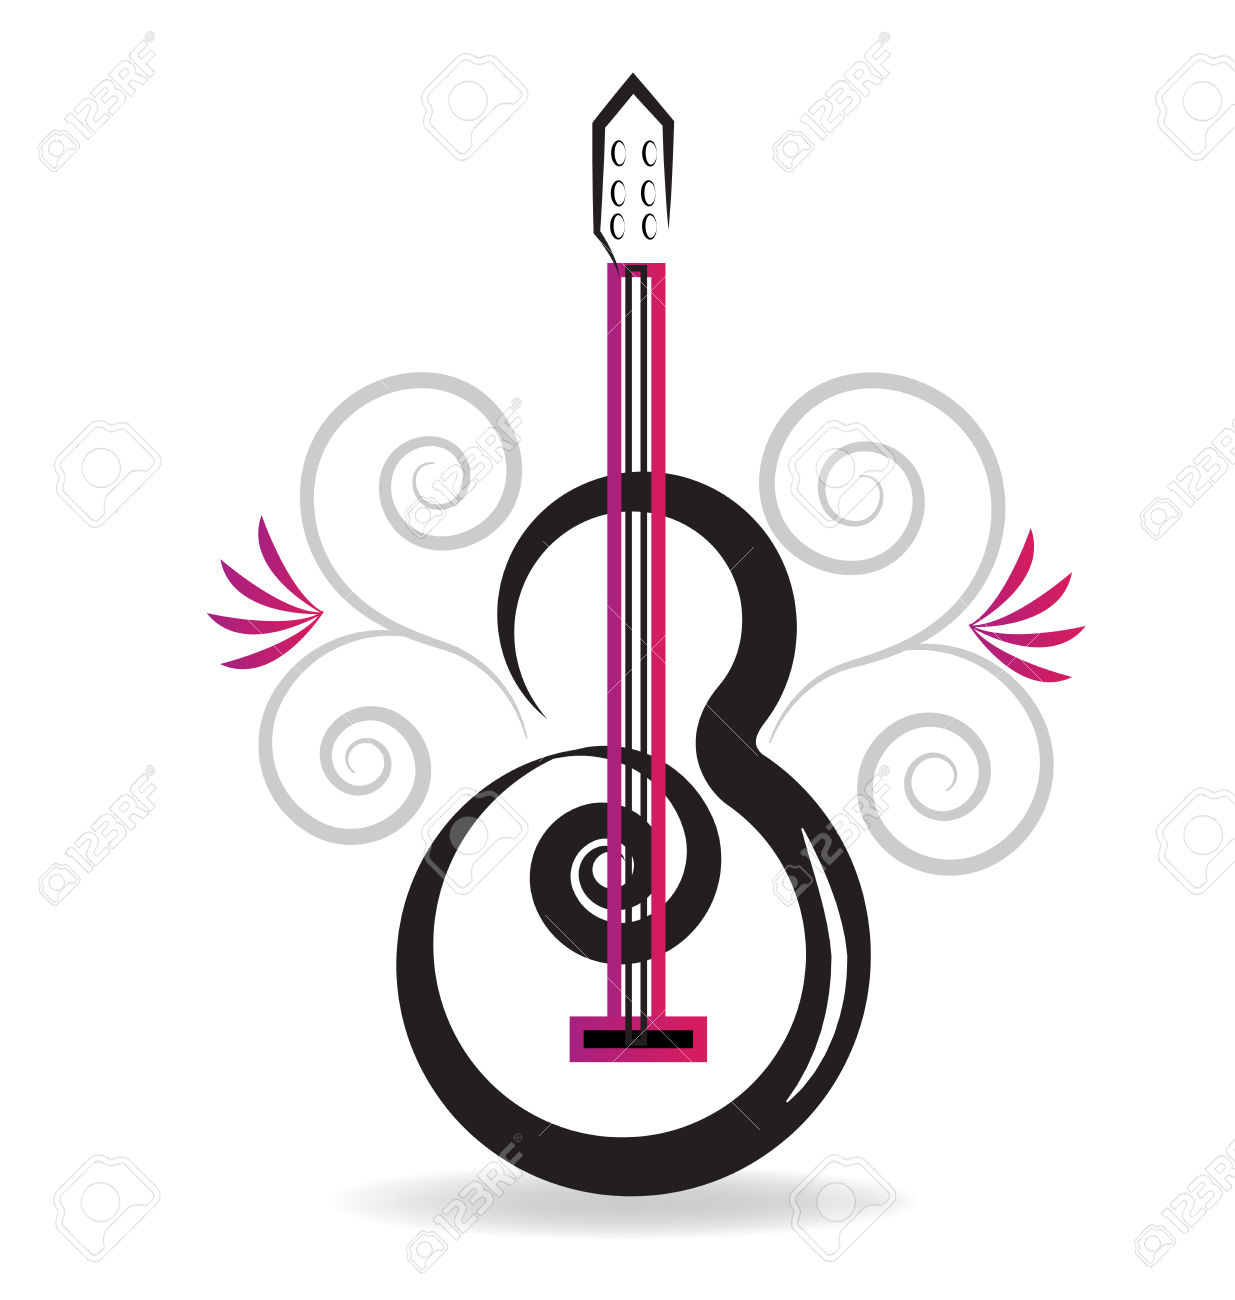 Music business clipart - Clipground